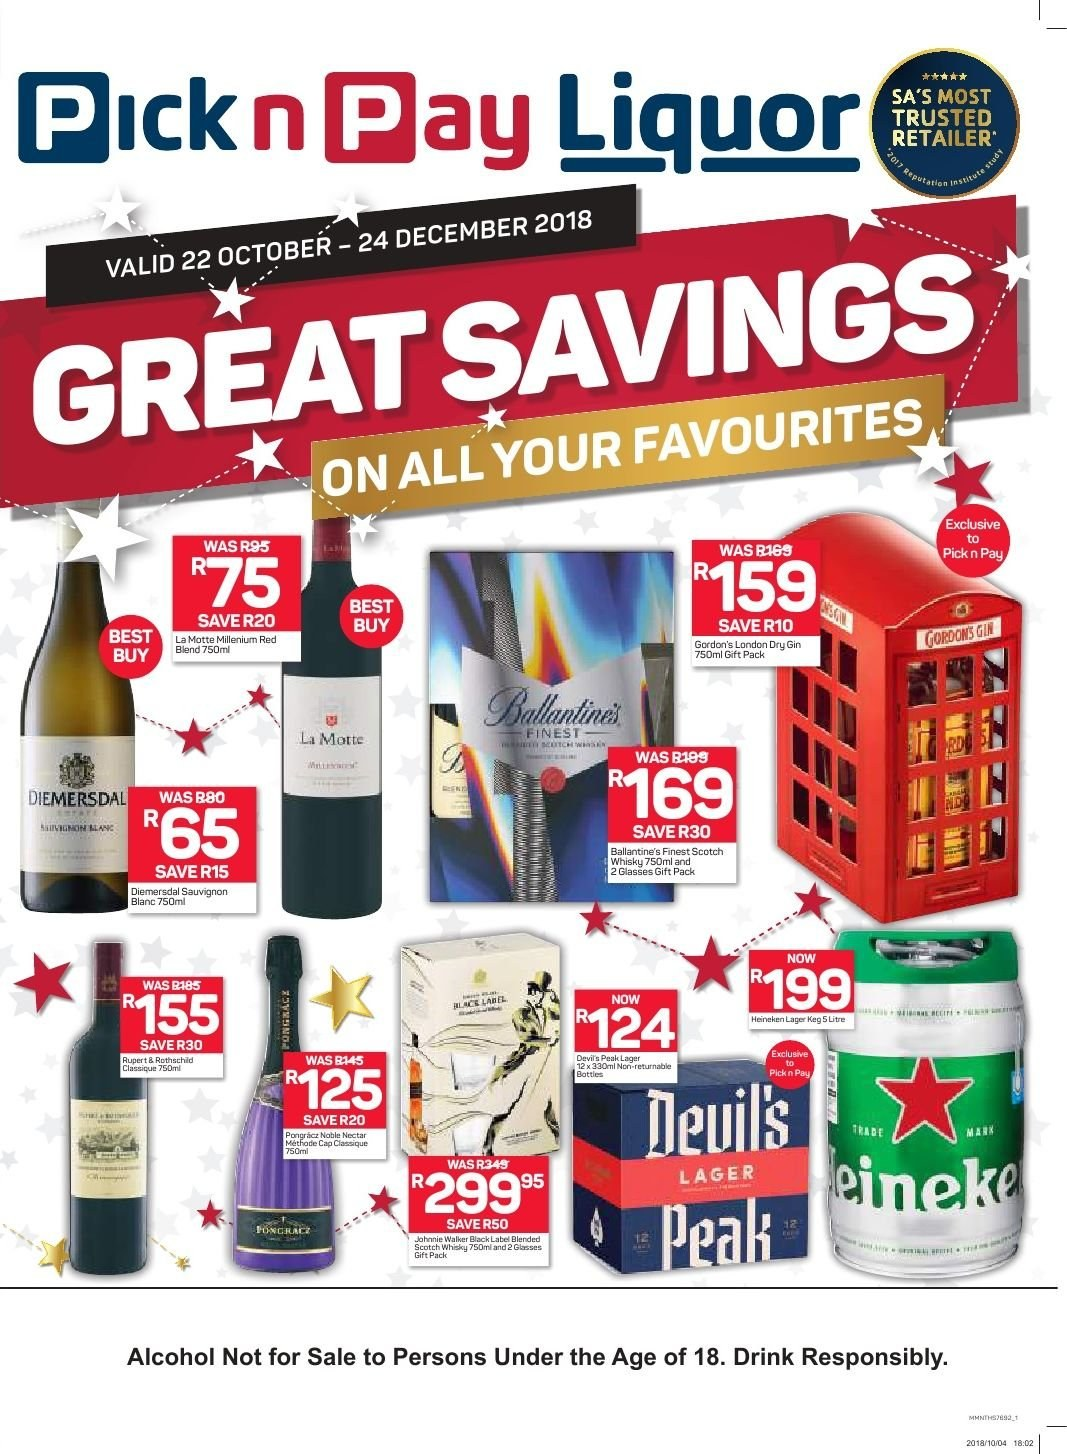 Pick n Pay special - 10.22.2018 - 12.24.2018 - Sales products - cap, gin, whisky, glasses. Page 1.